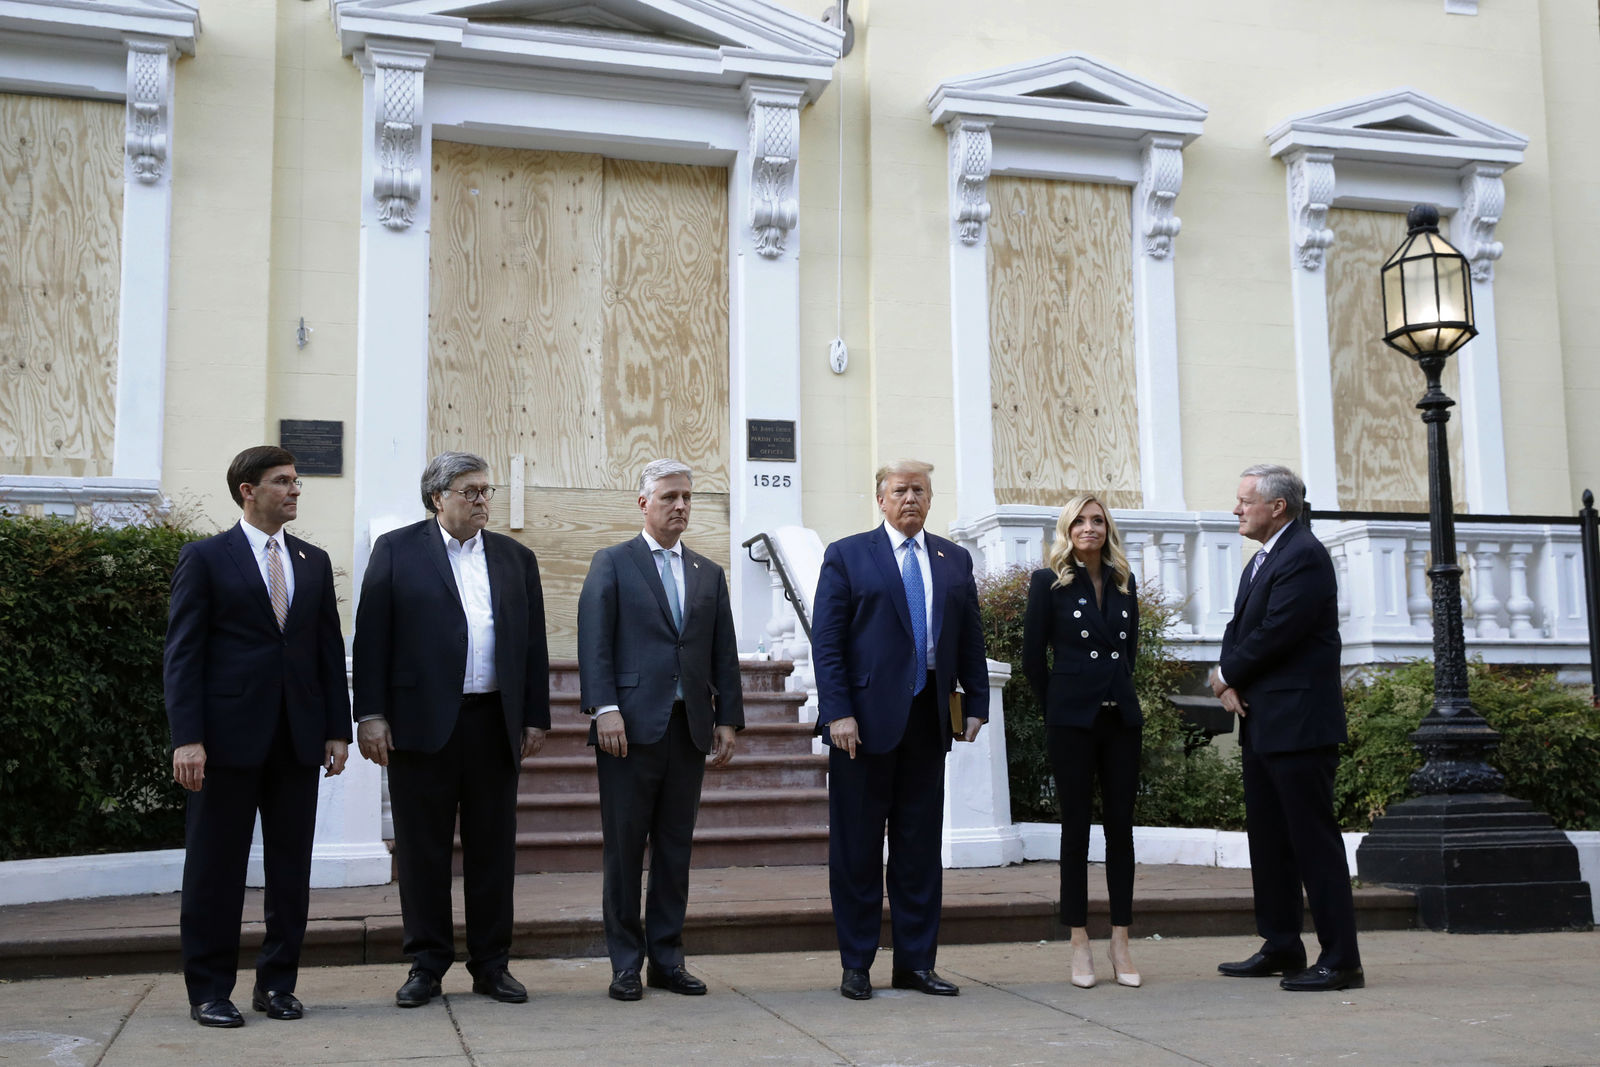 President Donald Trump stands outside St. John's Church across Lafayette Park from the White House Monday, June 1, 2020, in Washington. (AP Photo/Patrick Semansky)